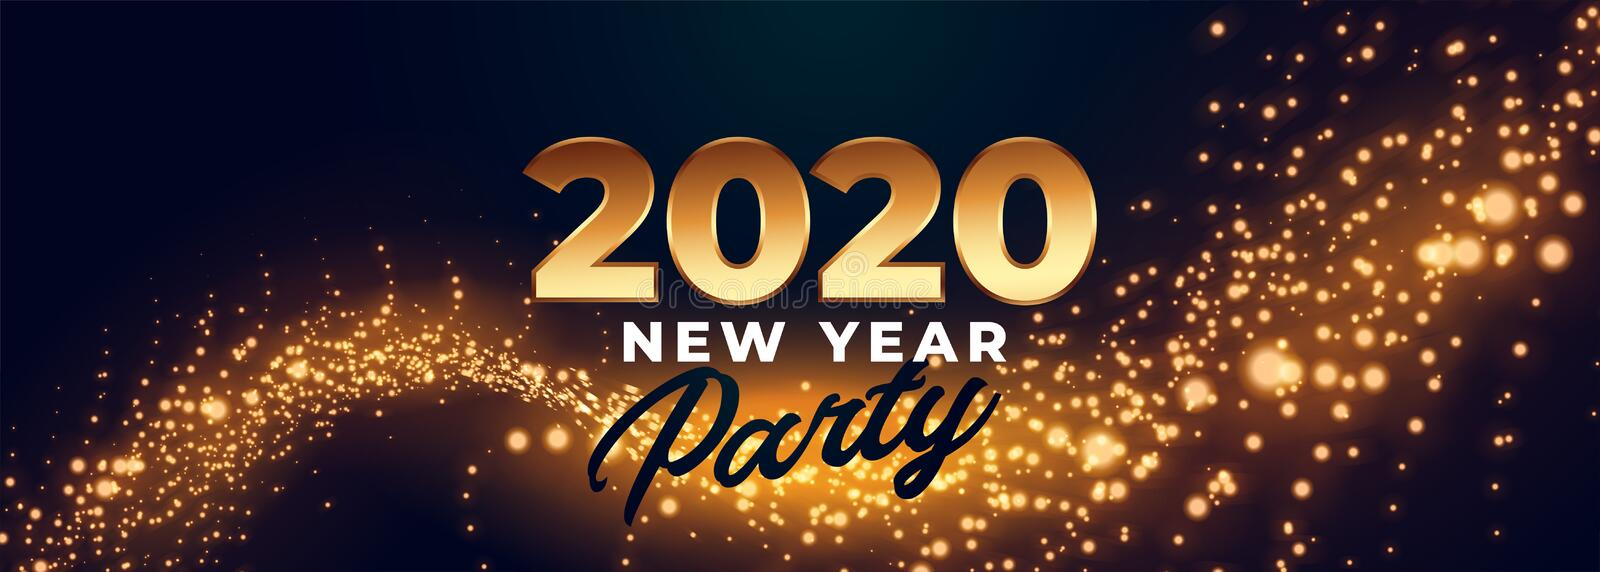 2020 happy new year party celebration banner design vector illustration